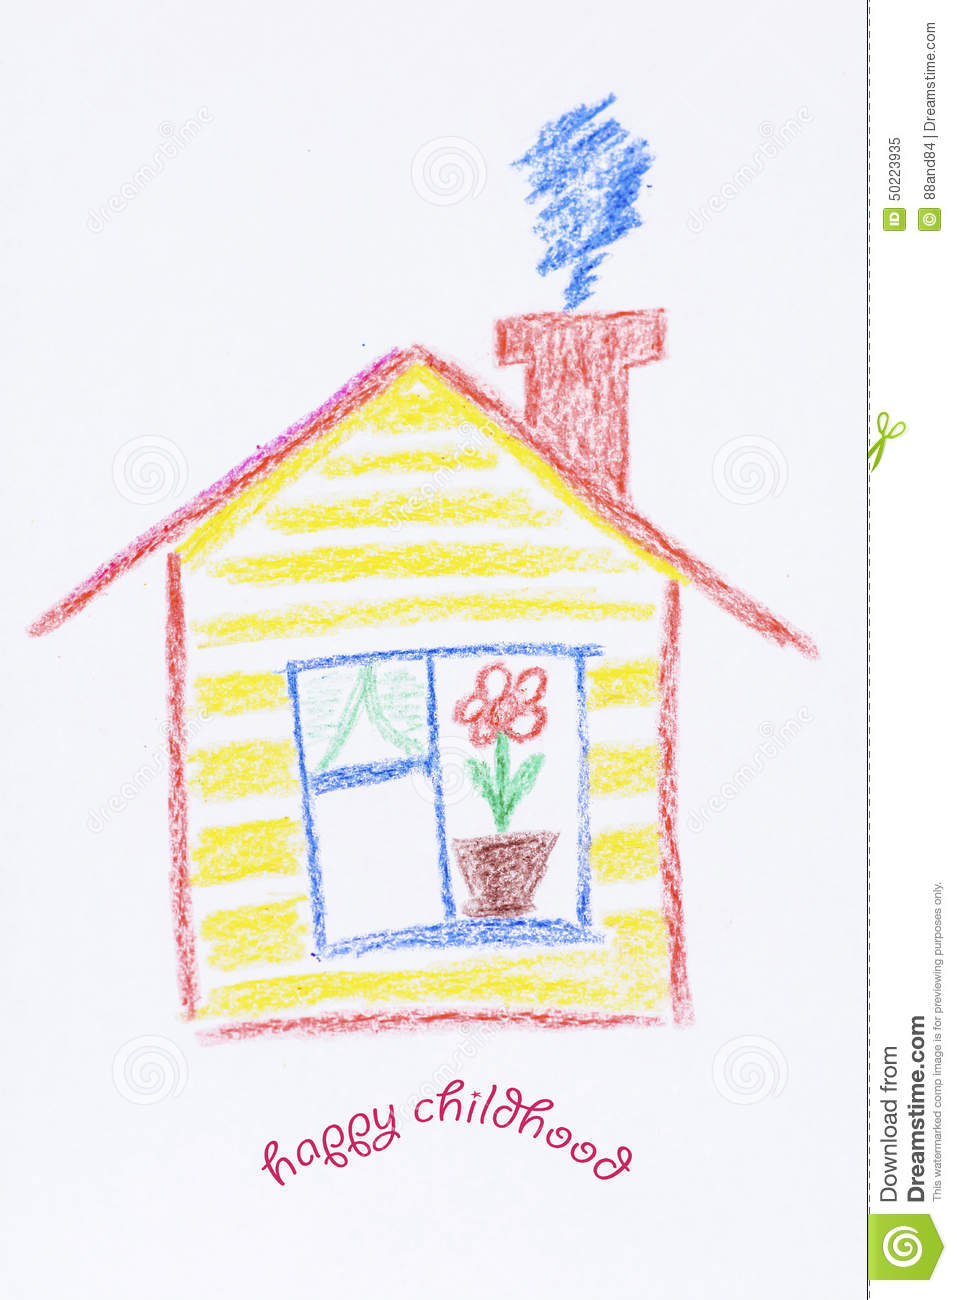 Kids House Drawing: Yellow Painted Children's House .Childlike Drawing Of